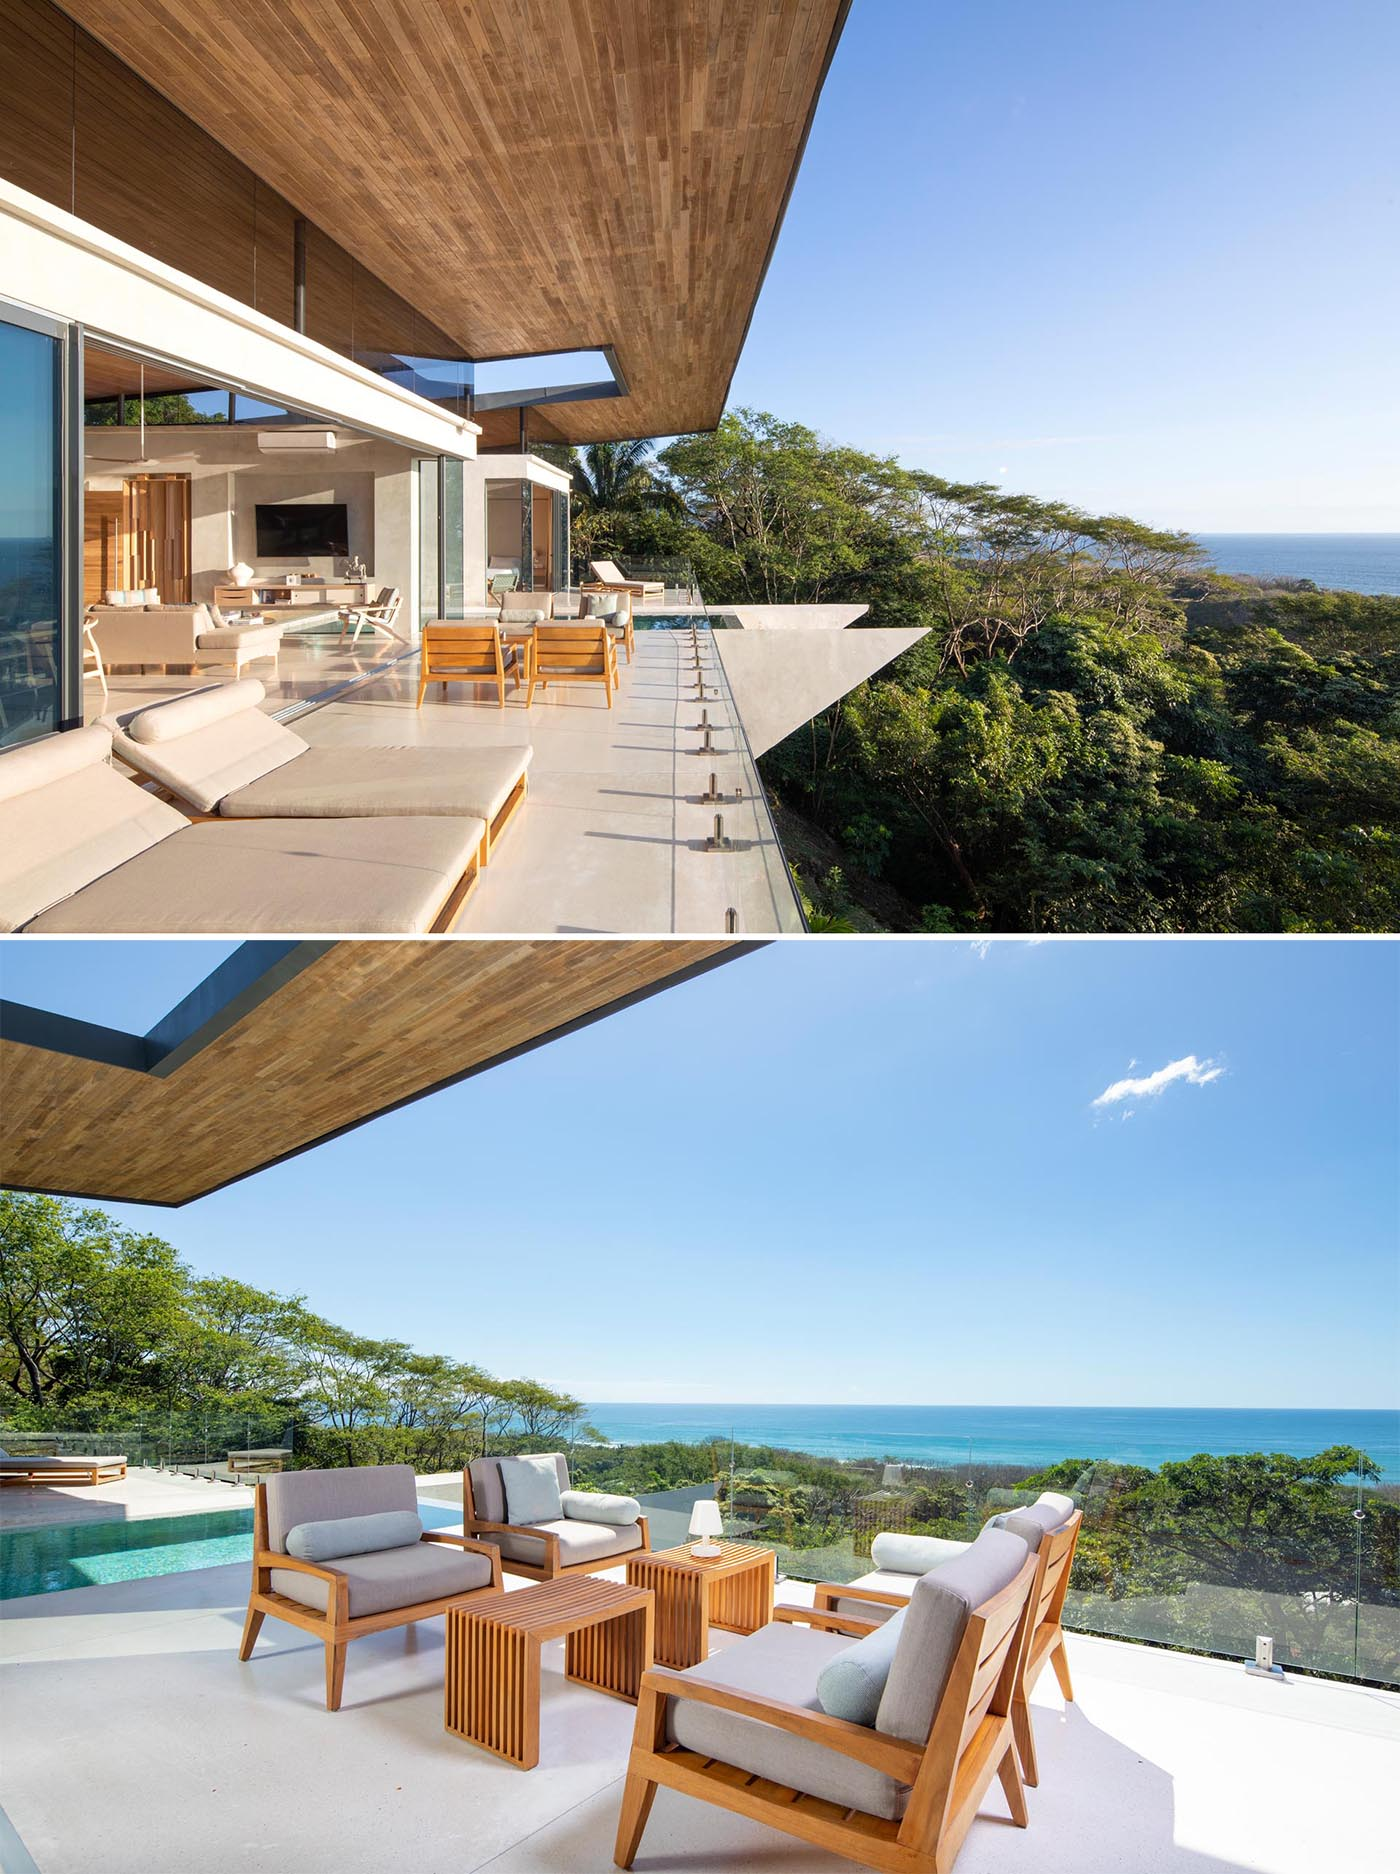 Sliding glass walls connect the interior spaces with the balcony, while the roof overhang shades different areas throughout the day.